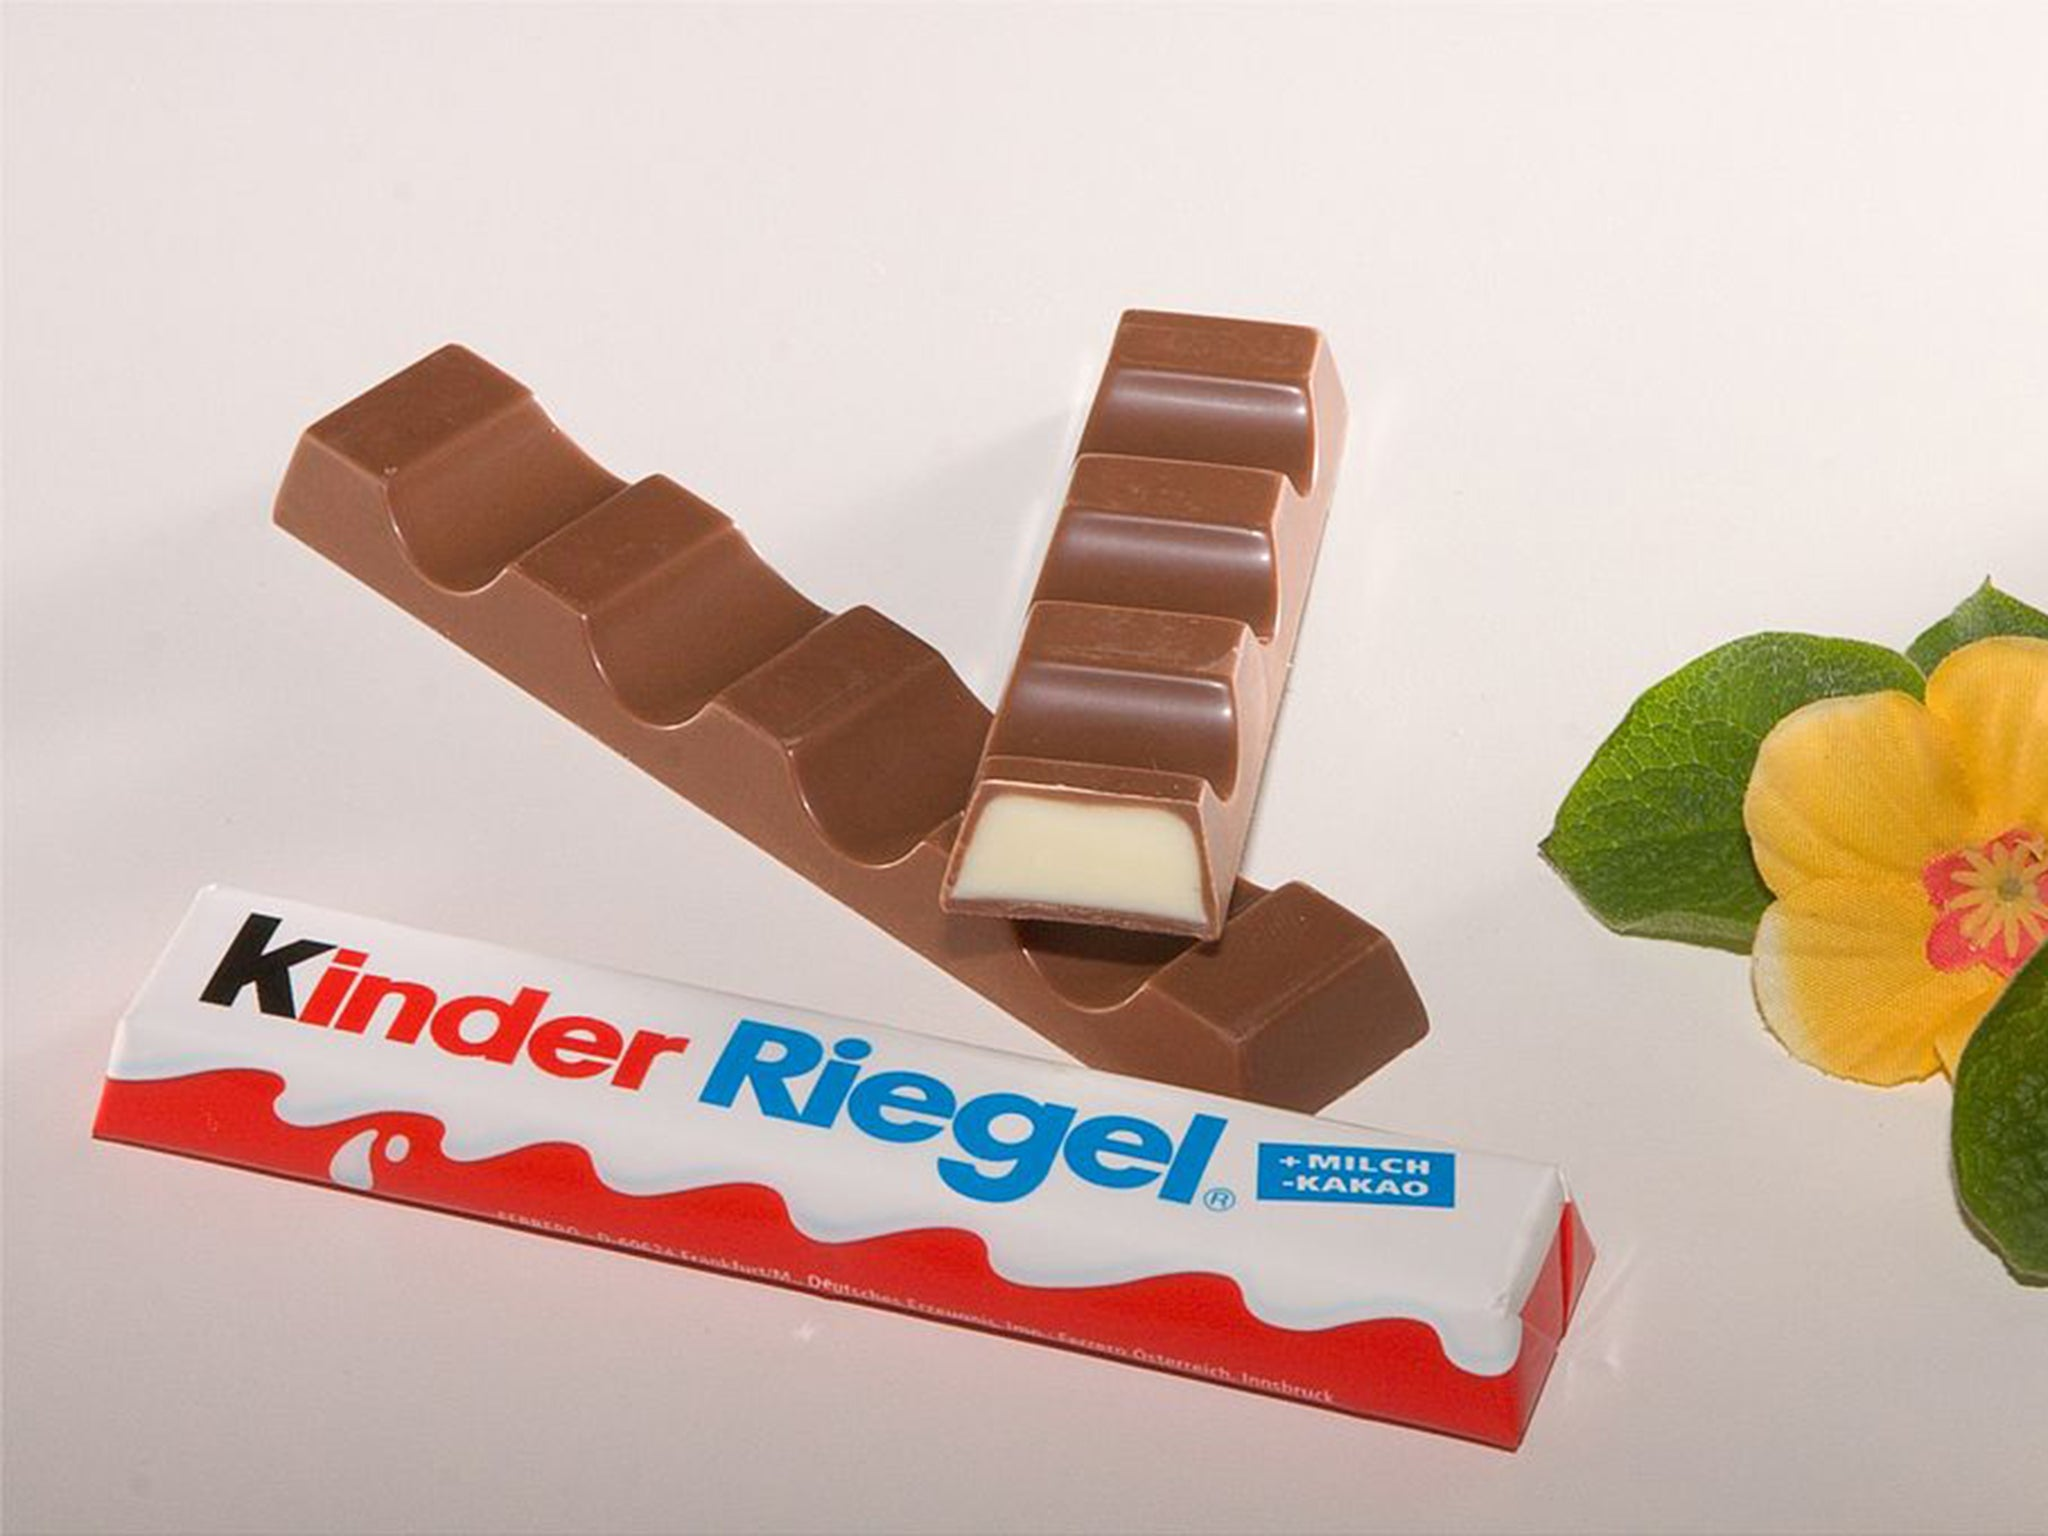 Kinder chocolate 'contain dangerous levels of likely carcinogens'